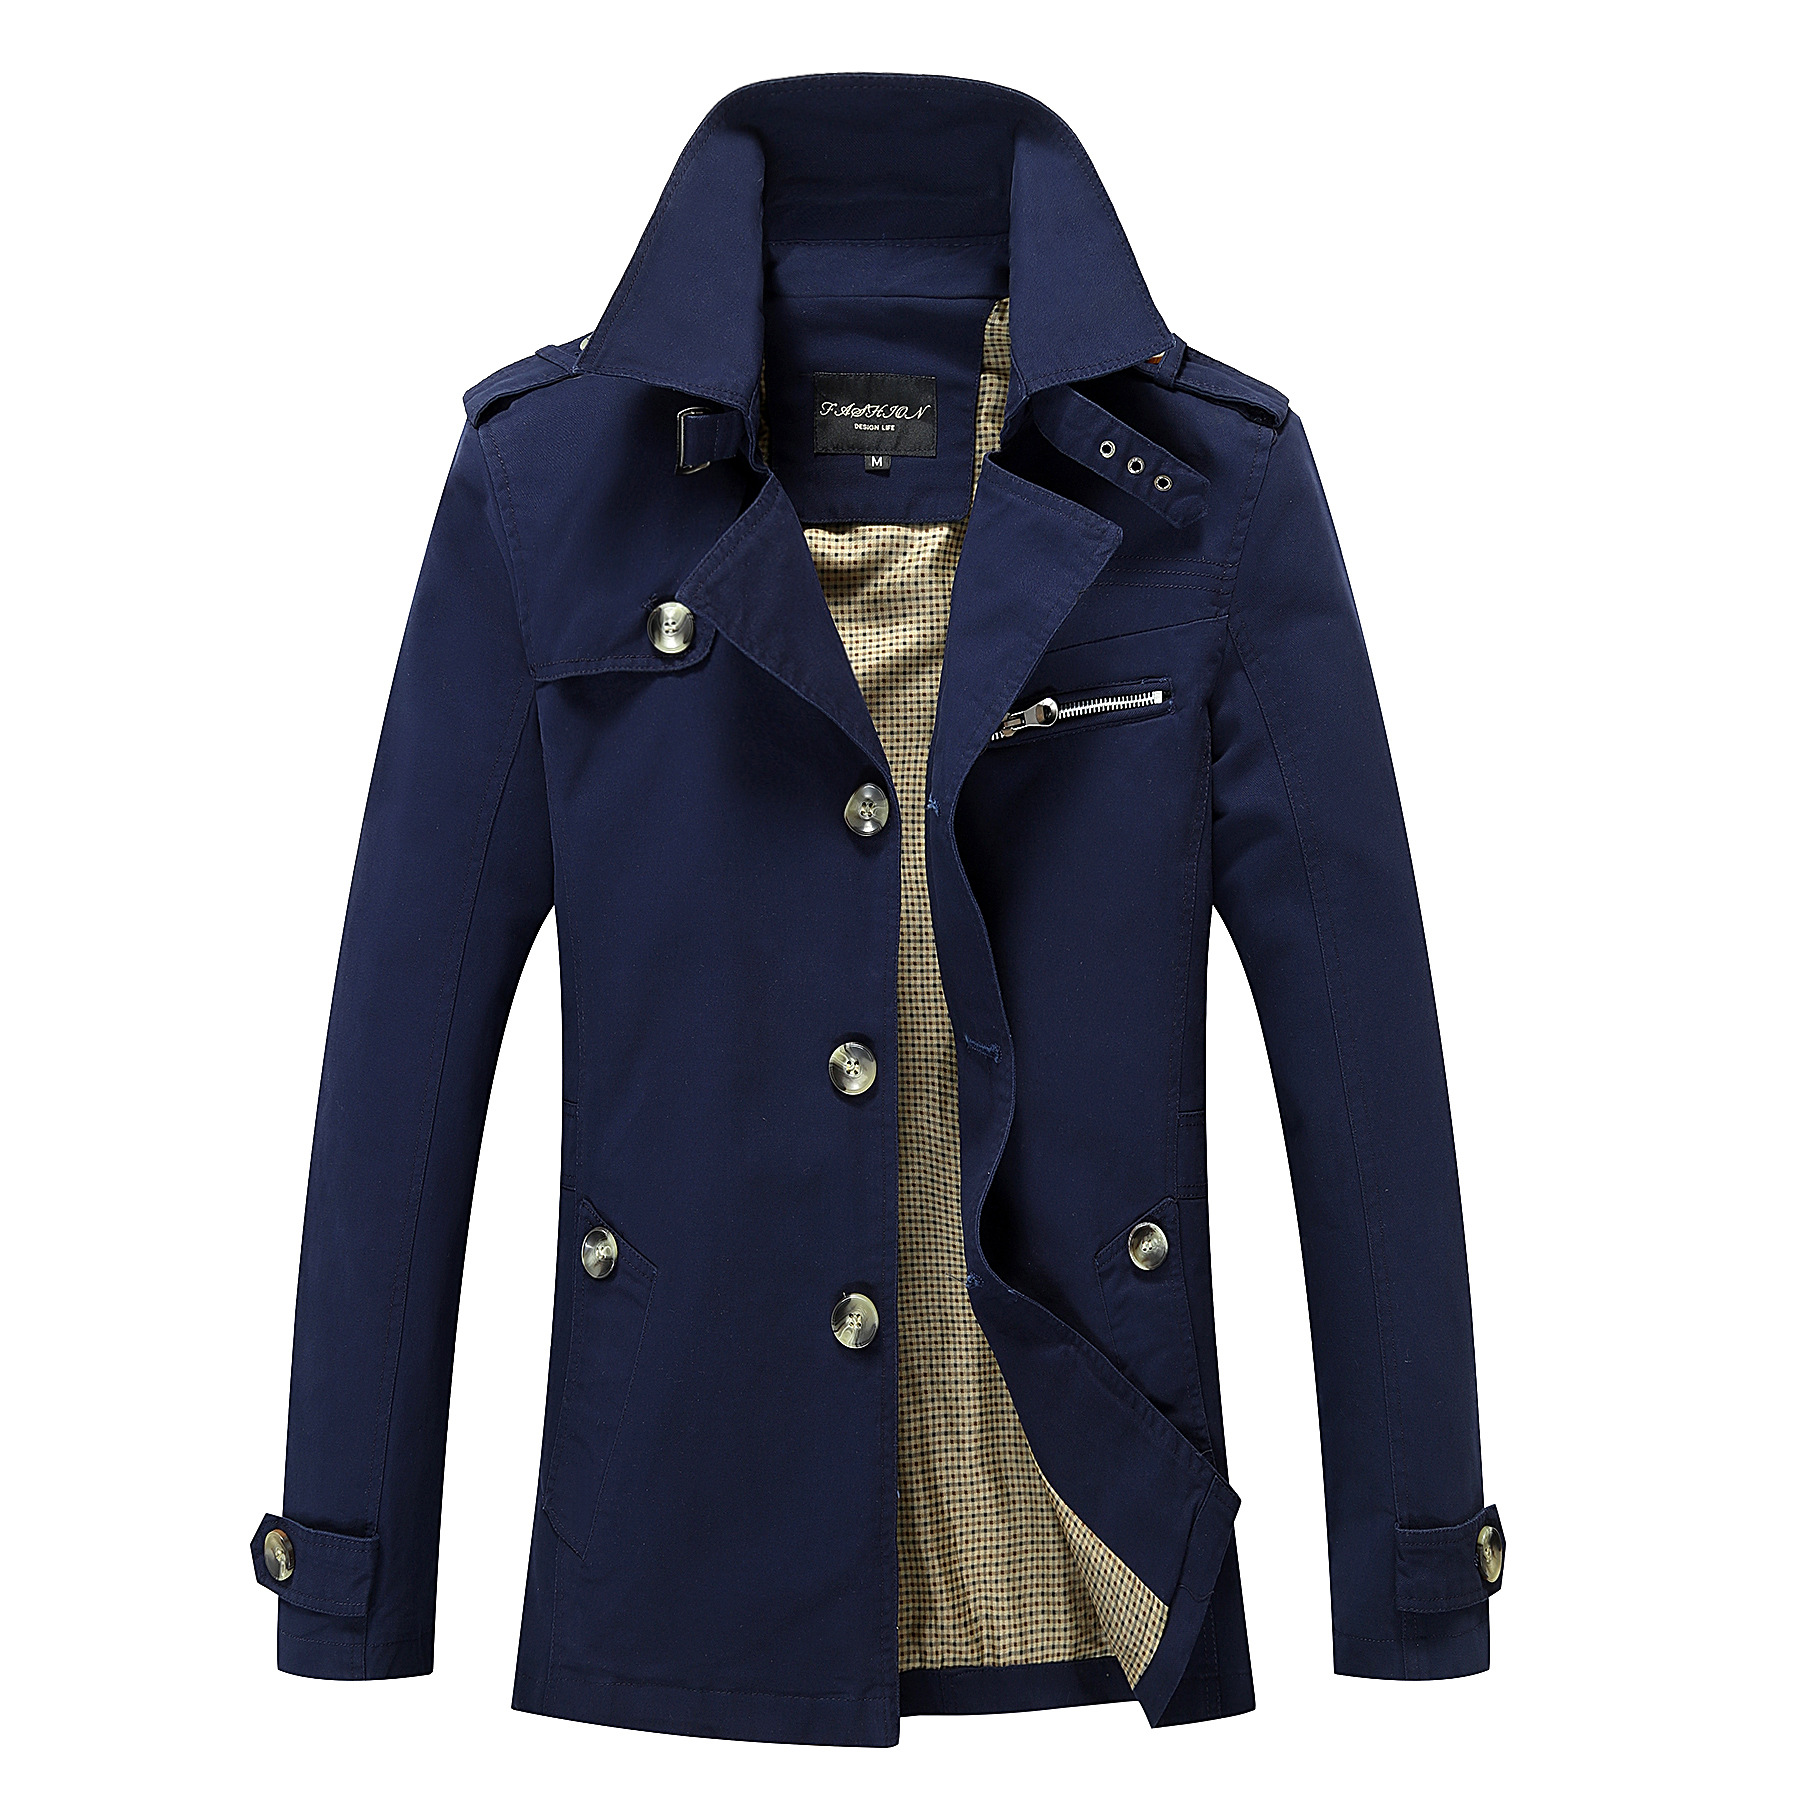 Spring Autumn Solid Casual Men Jackets Coat Long Sleeve Turn Down Collar Trenchcoat Plus Size M-5XL Slim Trench Men Jacket